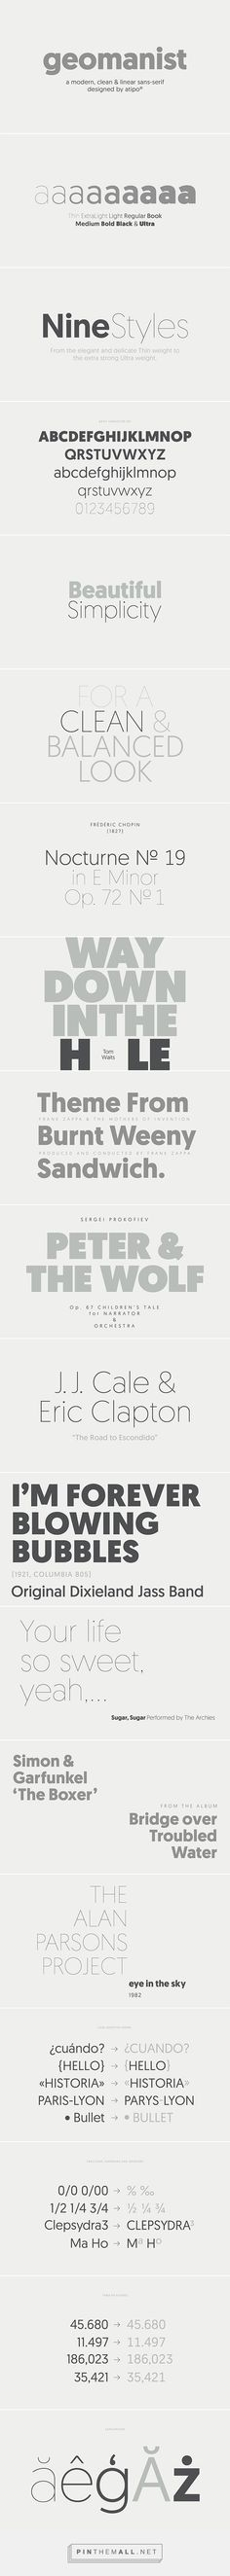 geomanist font on Behance by atipo... - a grouped images picture - Pin Them All